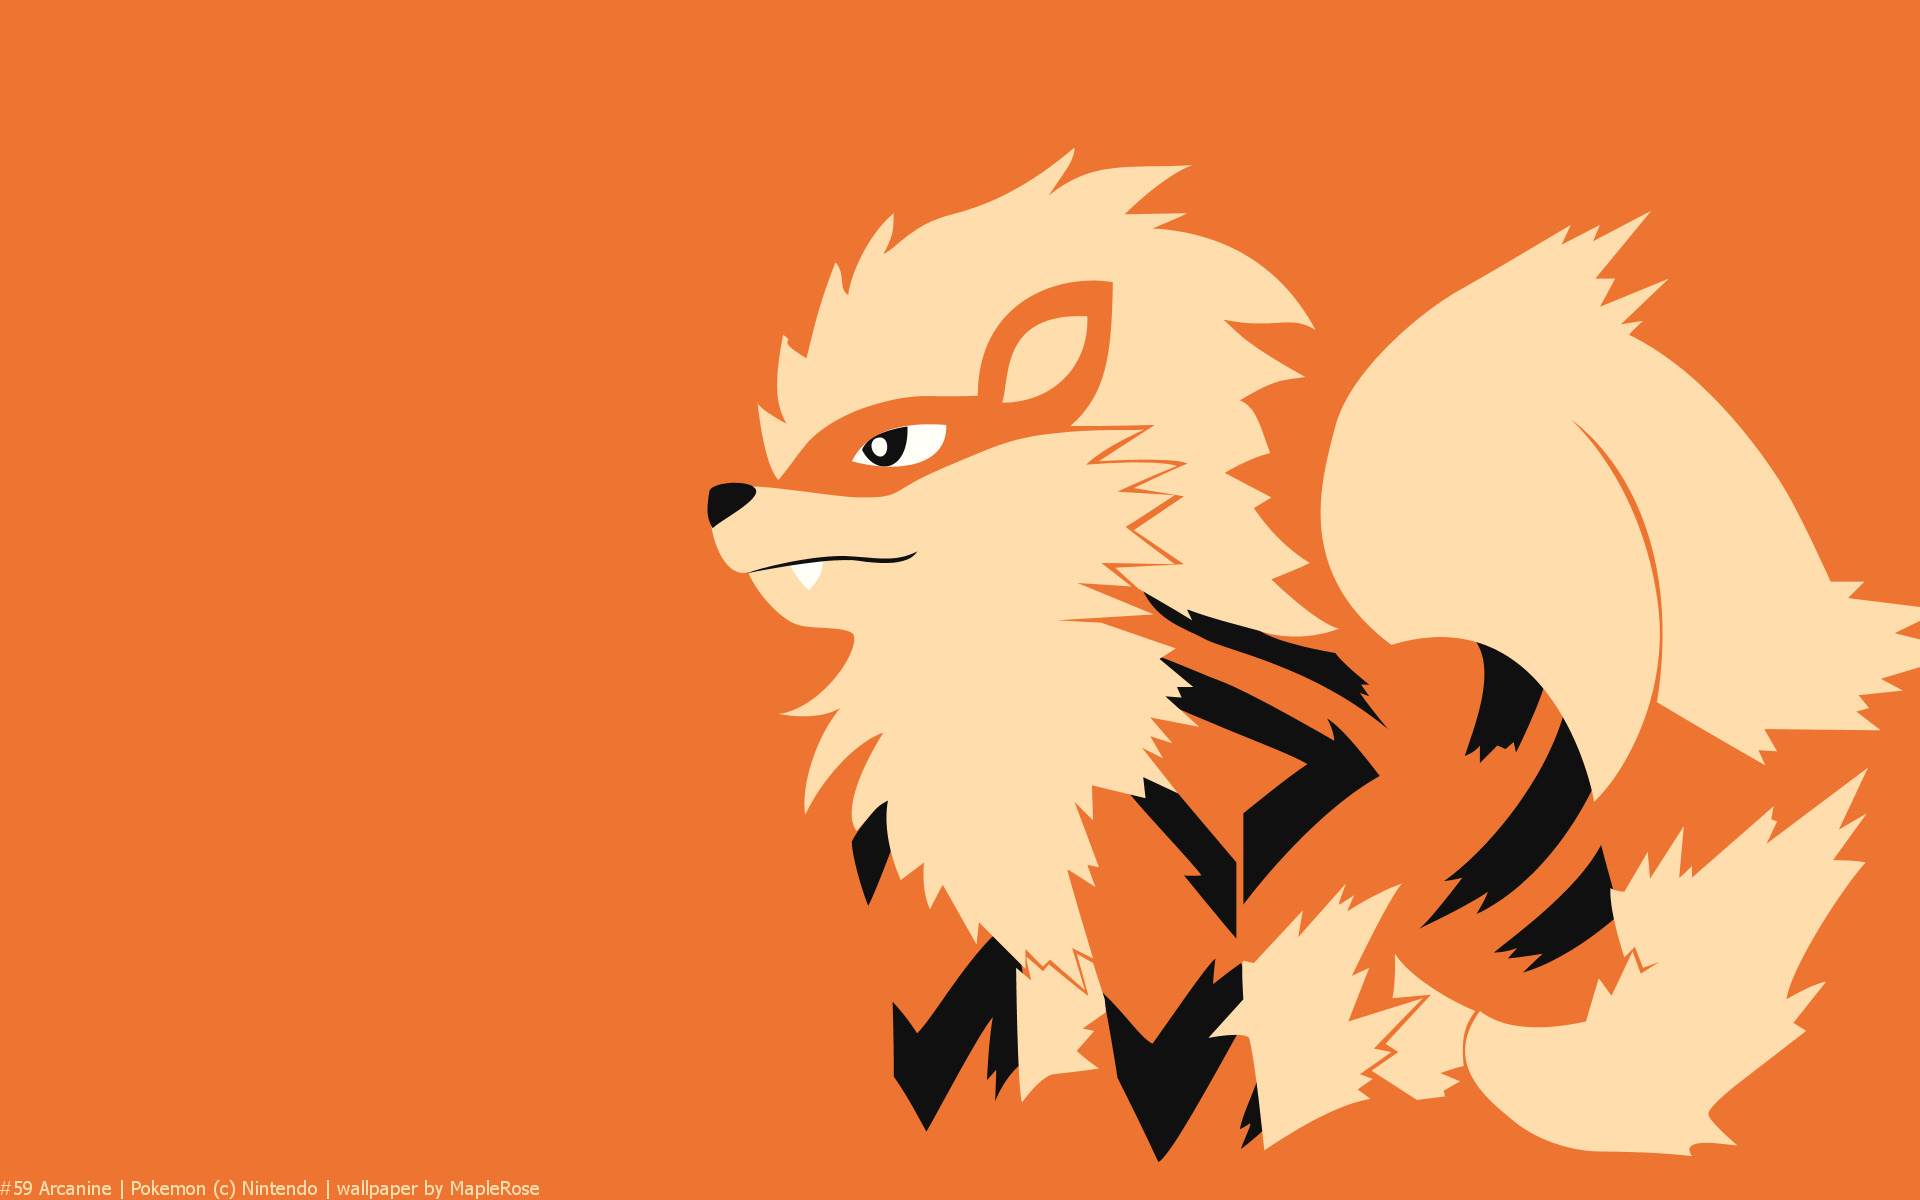 Arcanine (Pokémon) - Bulbapedia, the community-driven ...